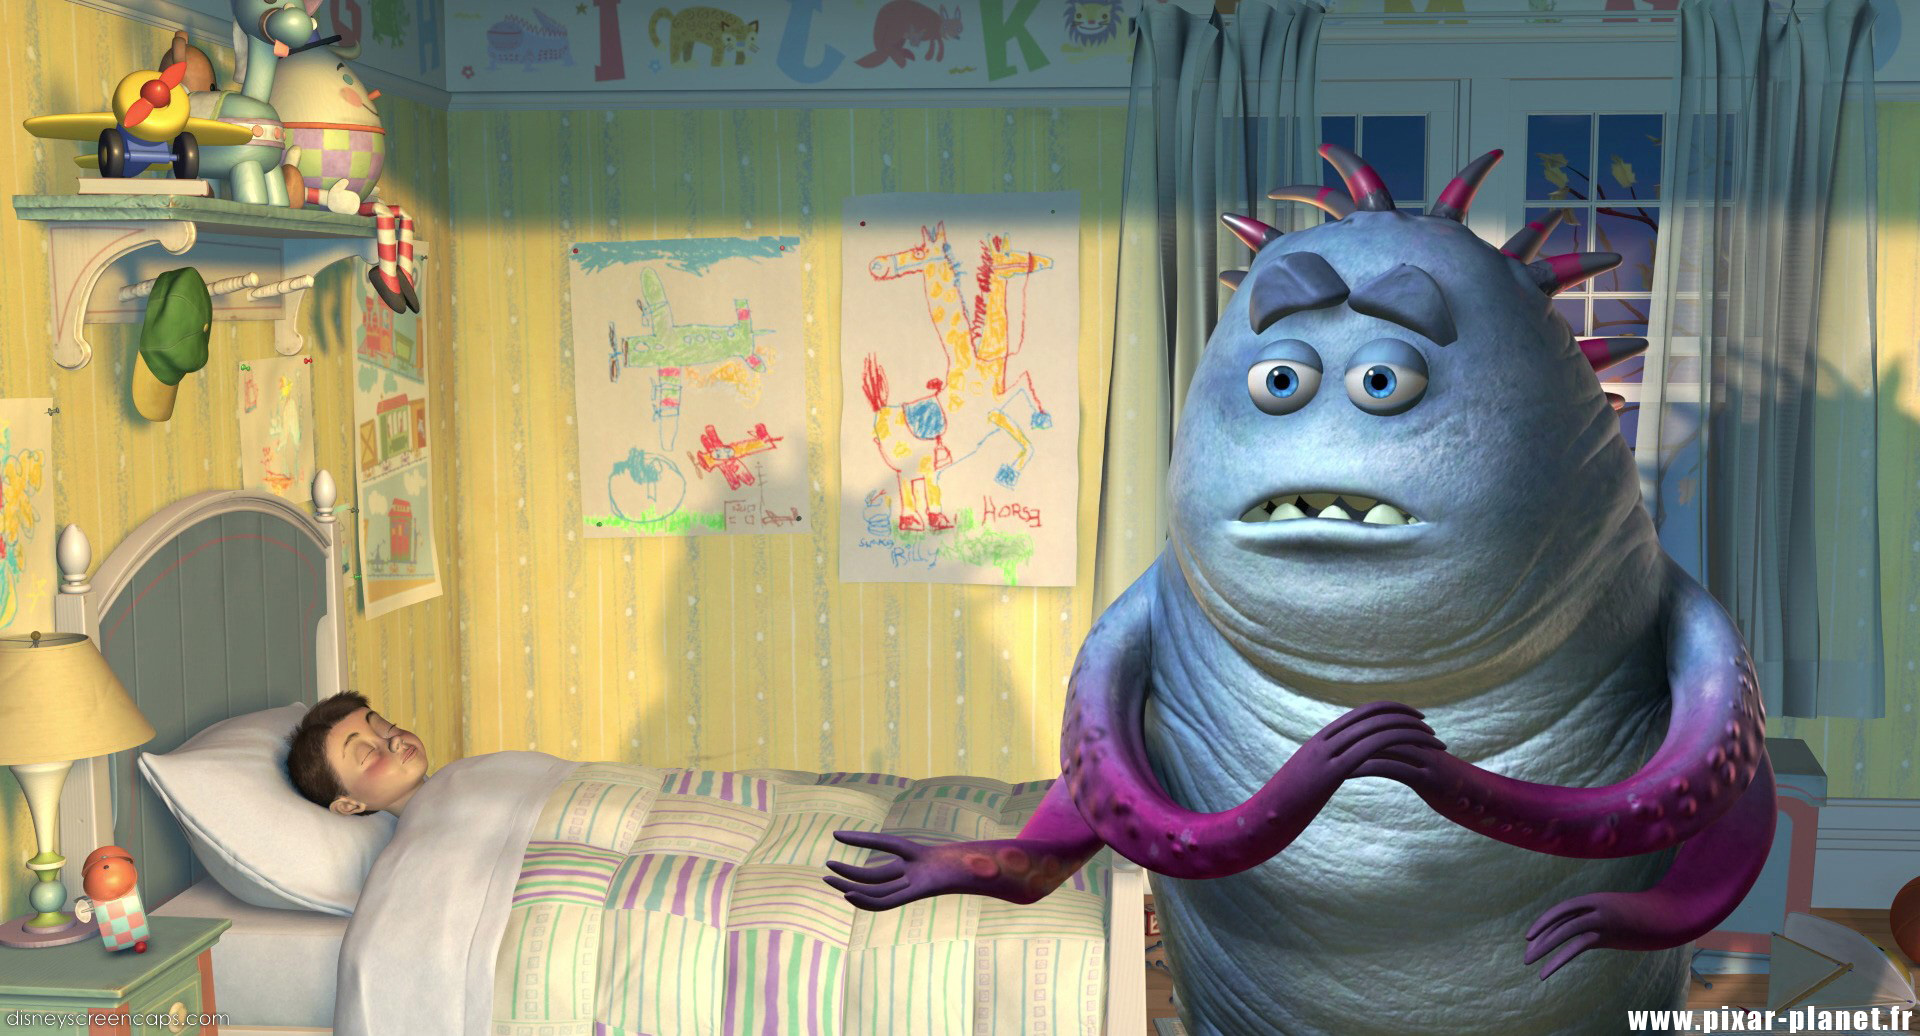 Quotes From Monsters Inc Pixar Planetfr